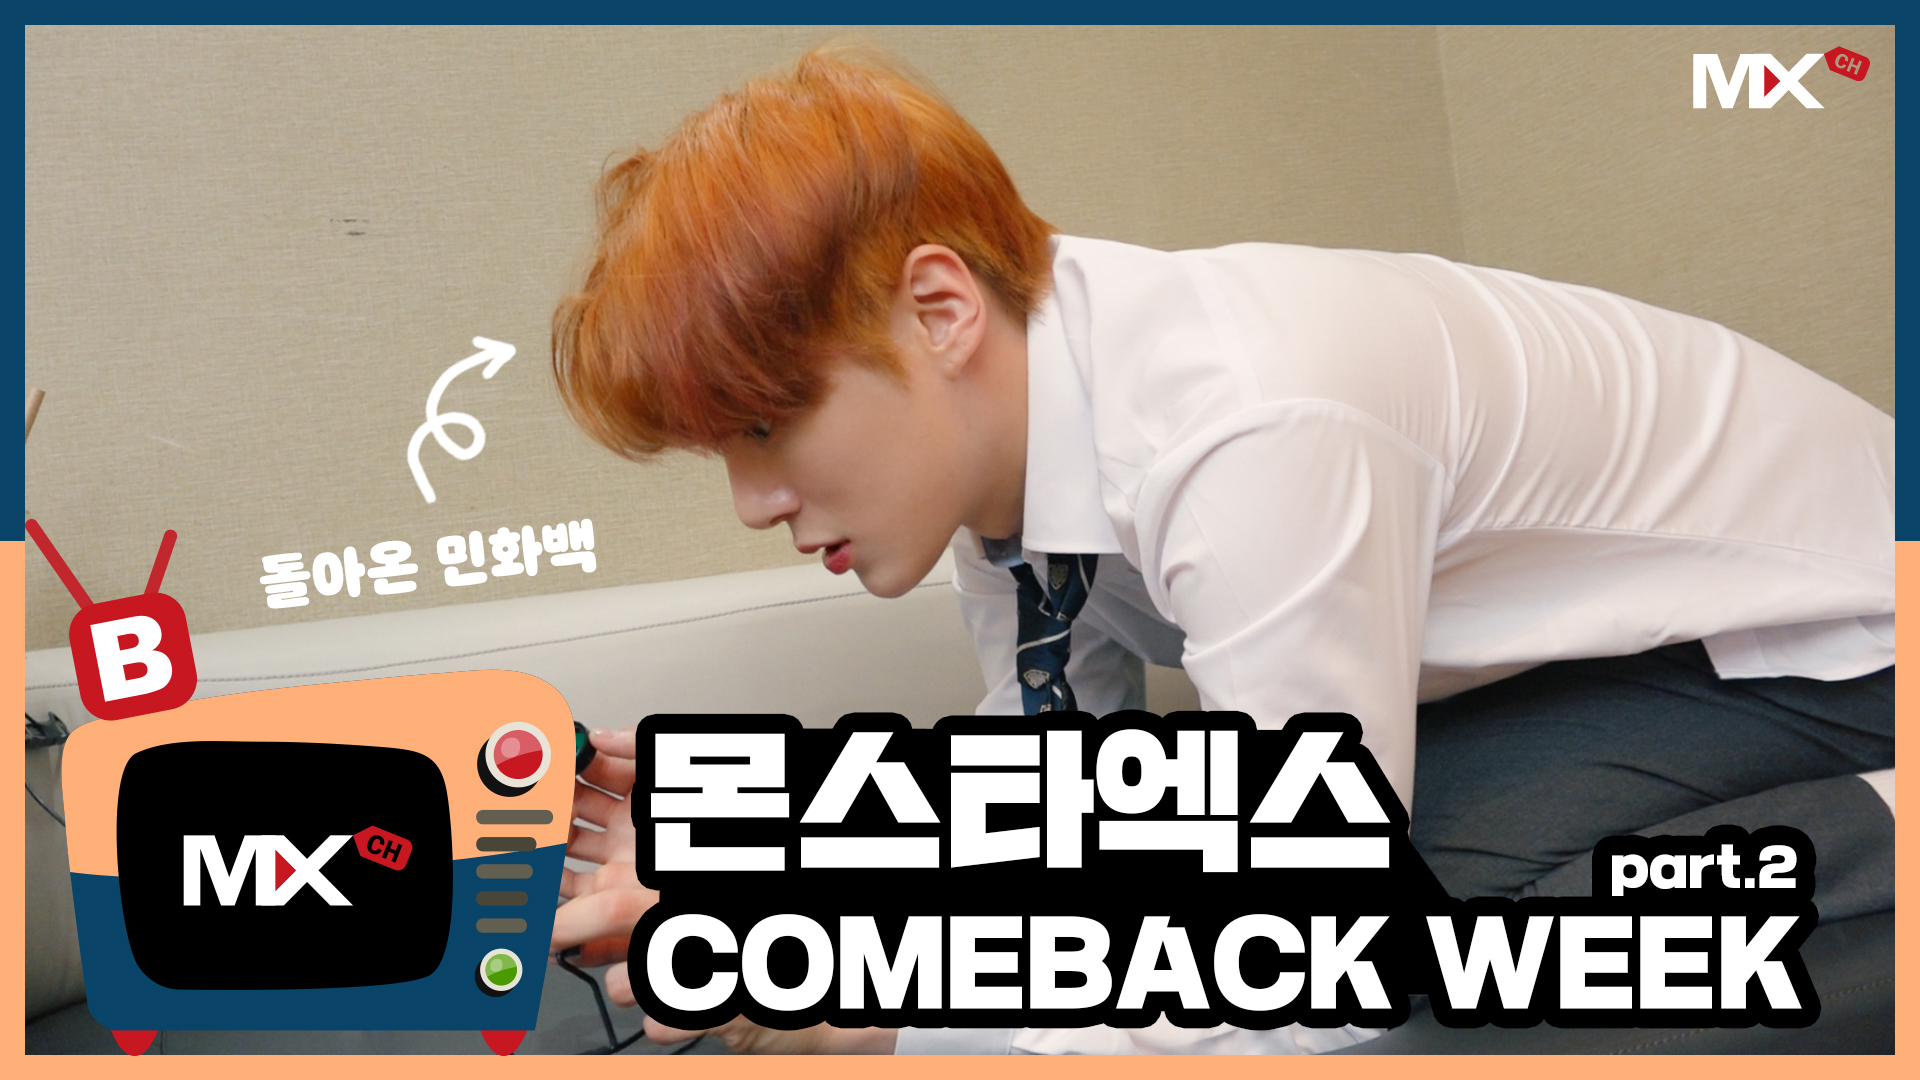 [몬채널][B] EP.181 'FANTASIA' COMEBACK WEEK part.2